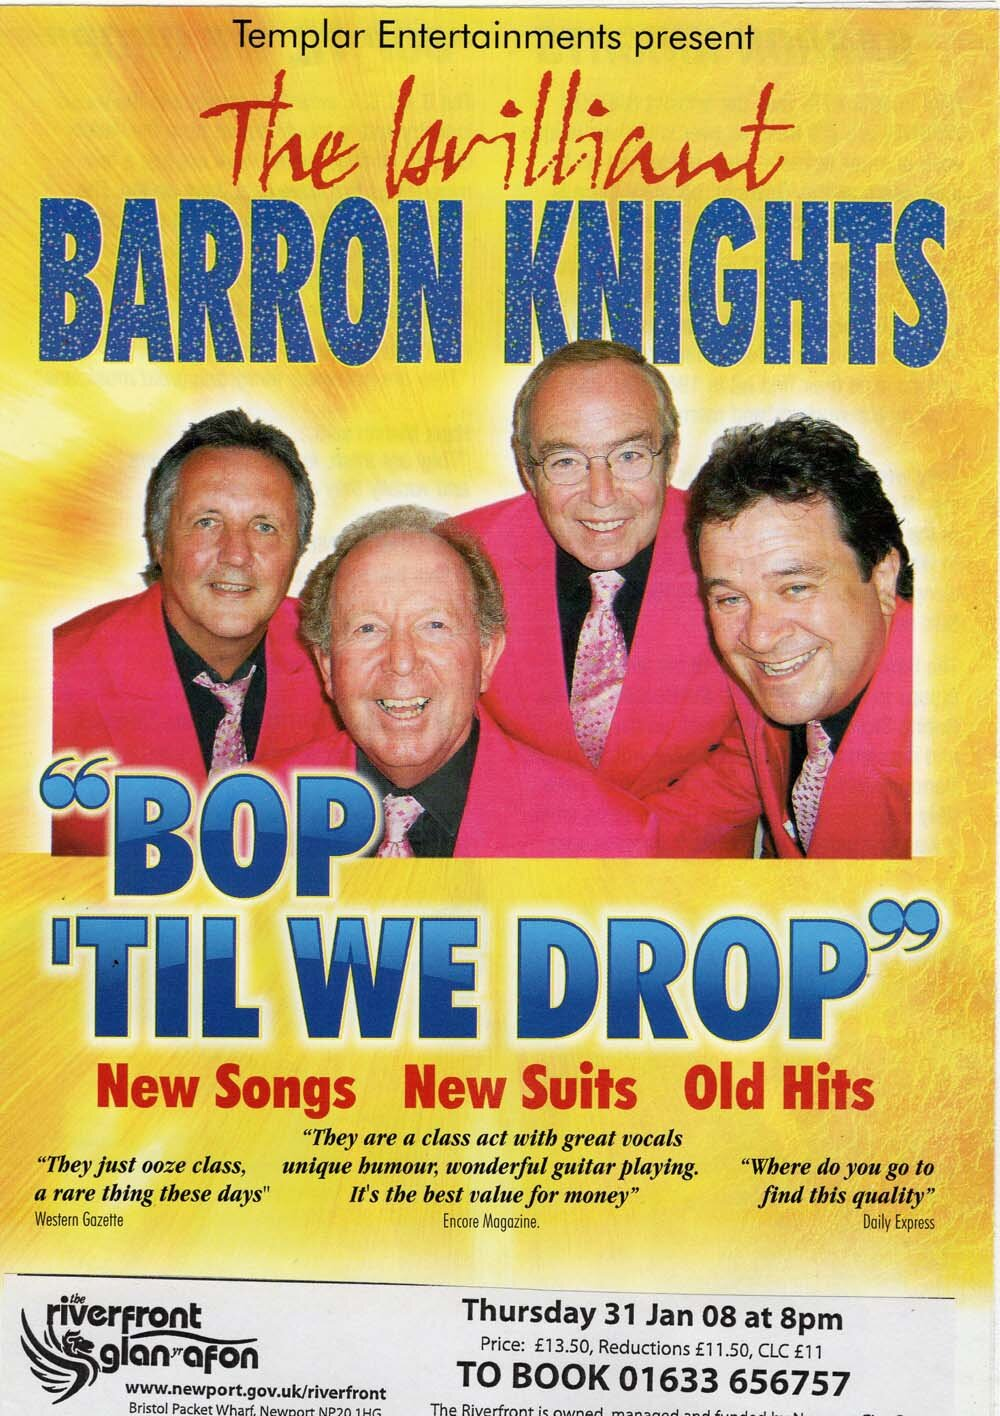 The Barron Knights played their Bop Til' We Drop   show at Newport's Riverfront Theatre on January 31, 2008